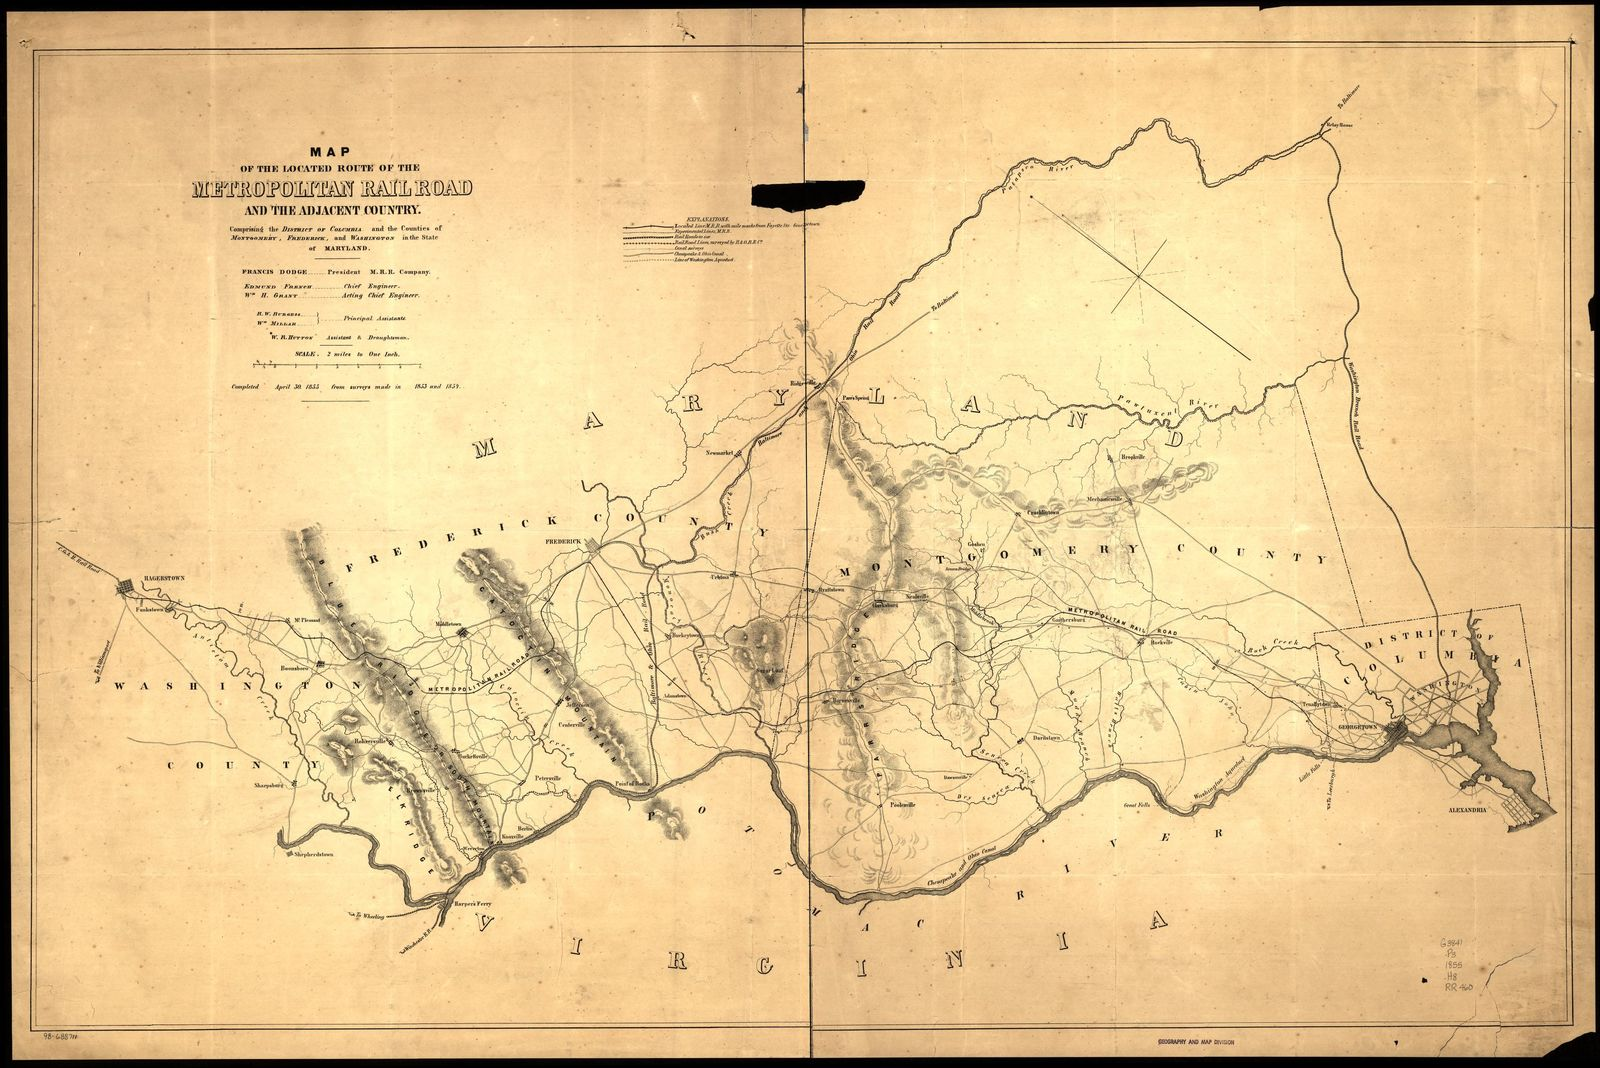 Map of the located route of the Metropolitan Rail Road and the adjacent country comprising the District of Columbia and the counties of Montgomery, Frederick, and Washington in the state of Maryland, Francis Dodge president M.R.R. Company, Edmund French, chief engineer, W. R. Hutton draughtsman, completed April 30, 1855 from surveys made in 1853 and 1854.